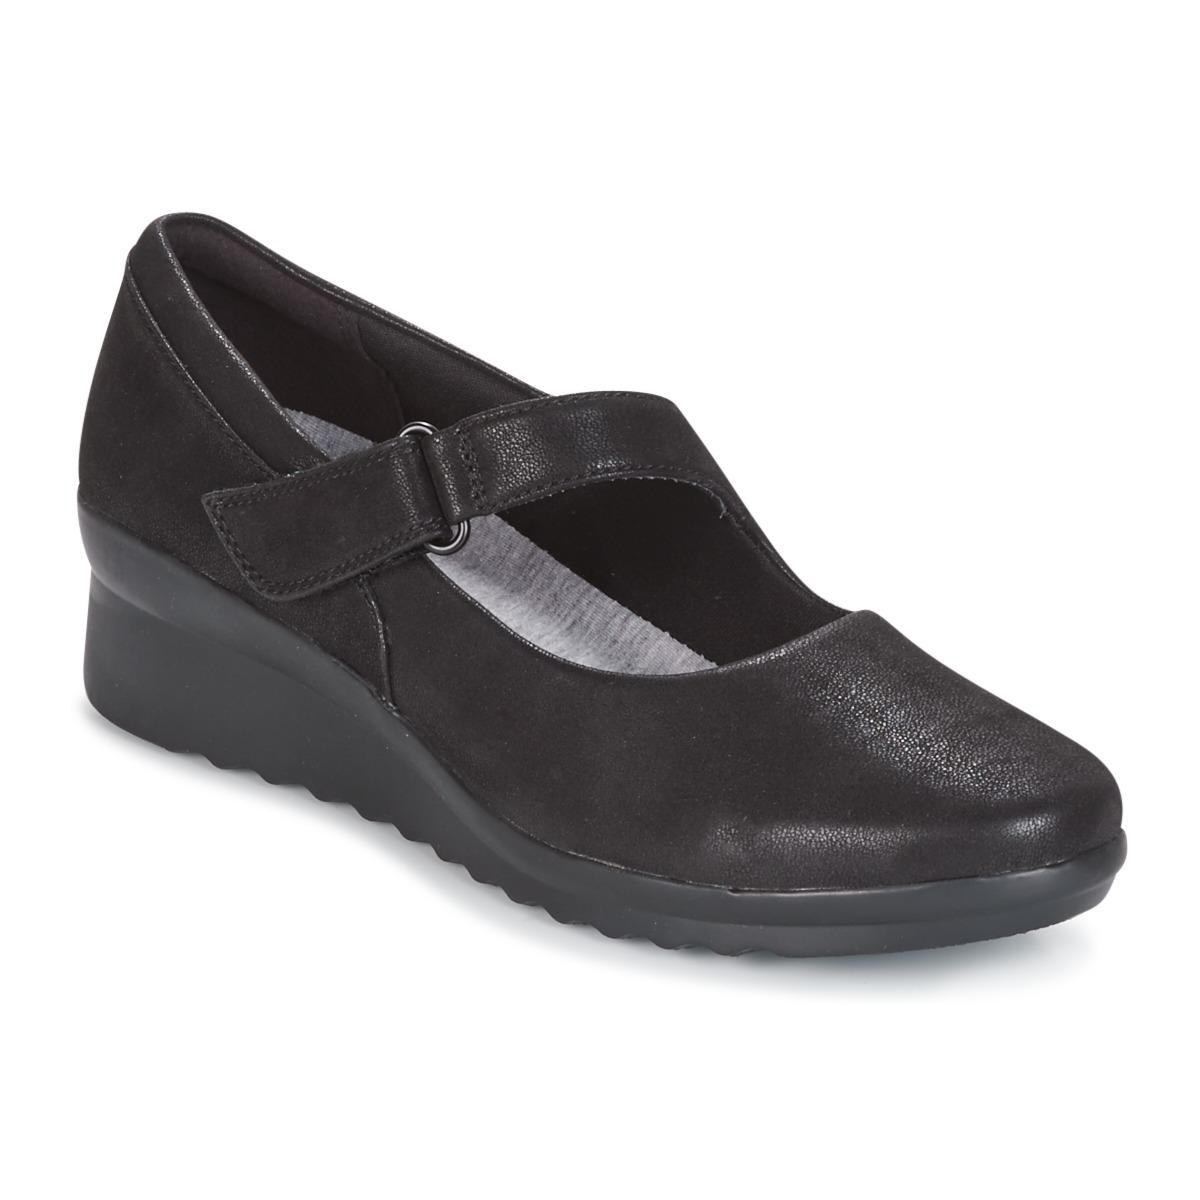 115beddf350 Clarks Caddell Yale Women s Shoes (pumps   Ballerinas) In Black in ...